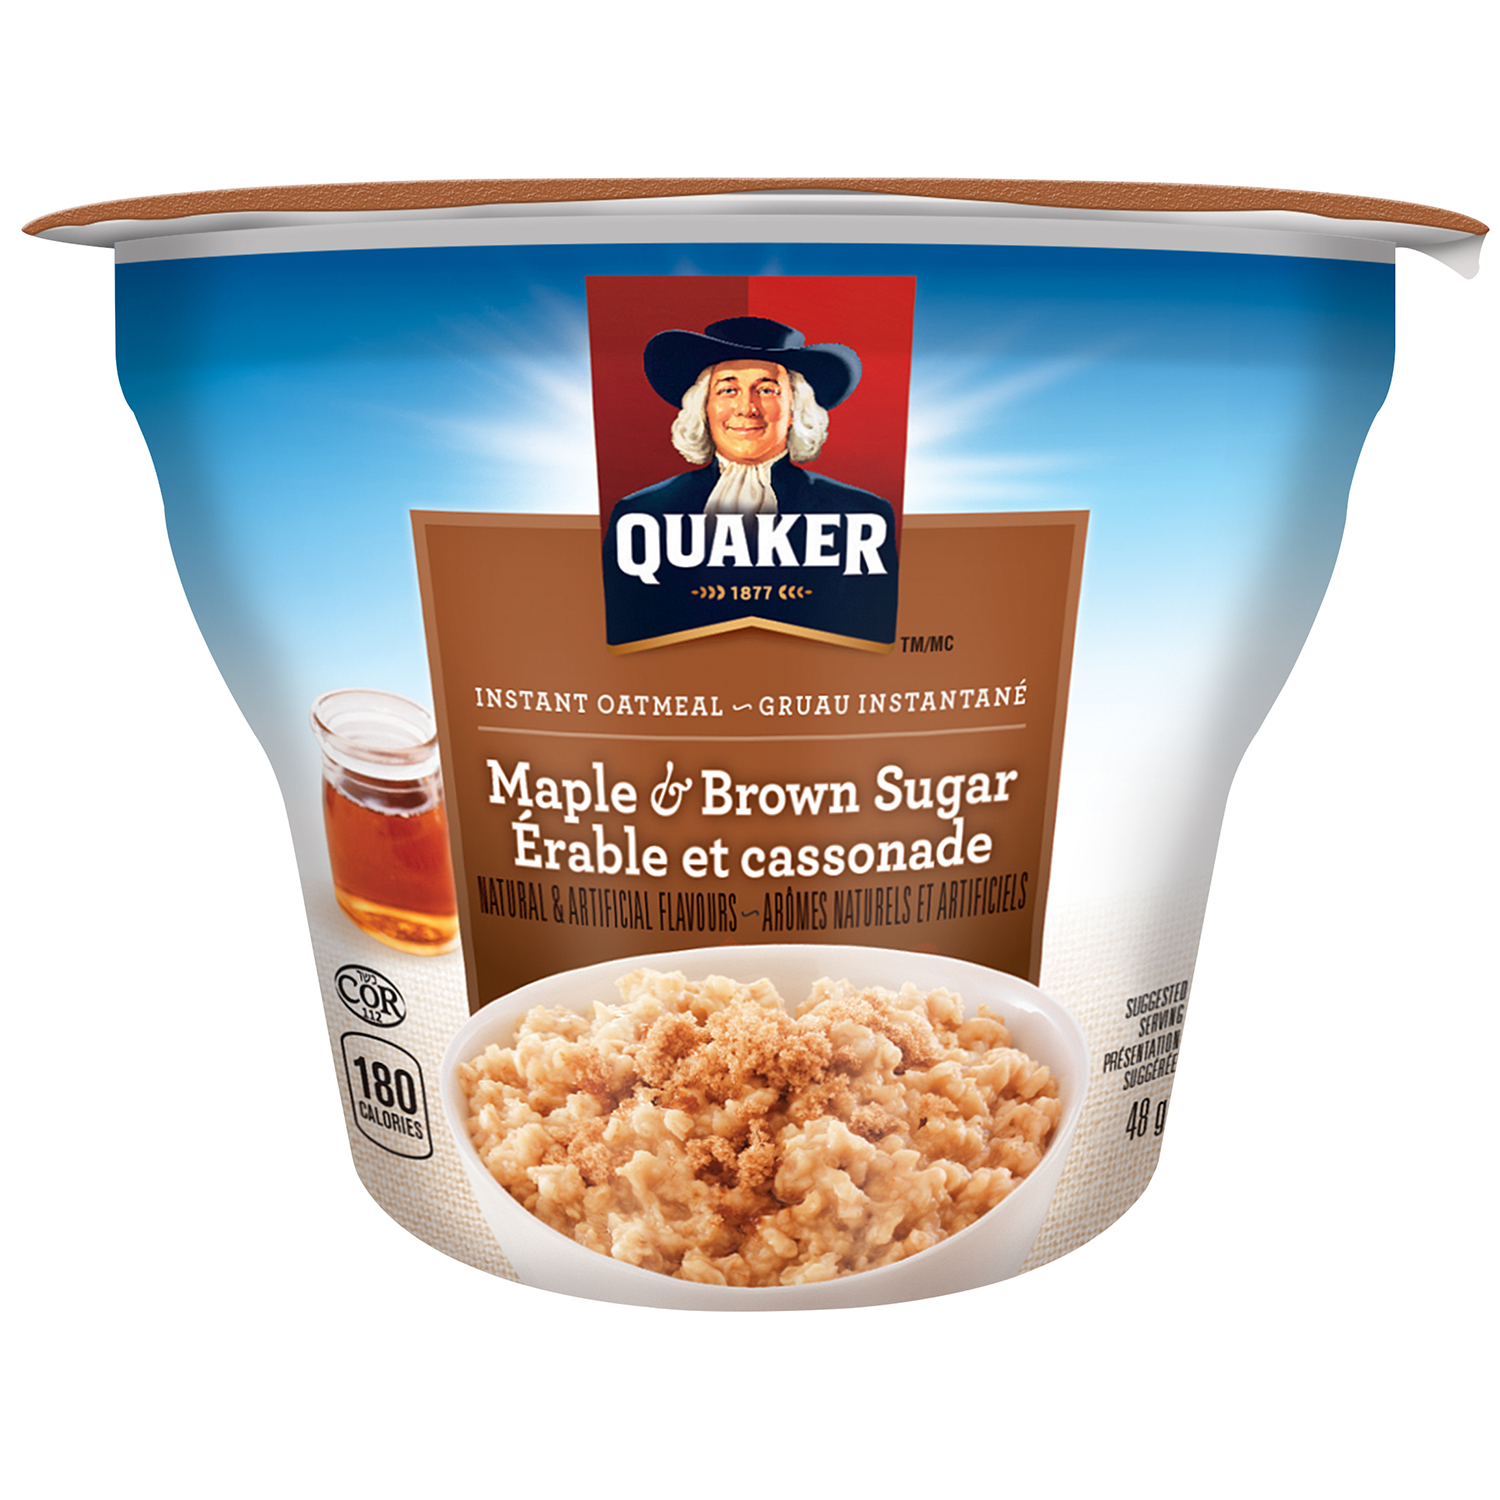 Quaker Instant Oatmeal, Maple & Brown